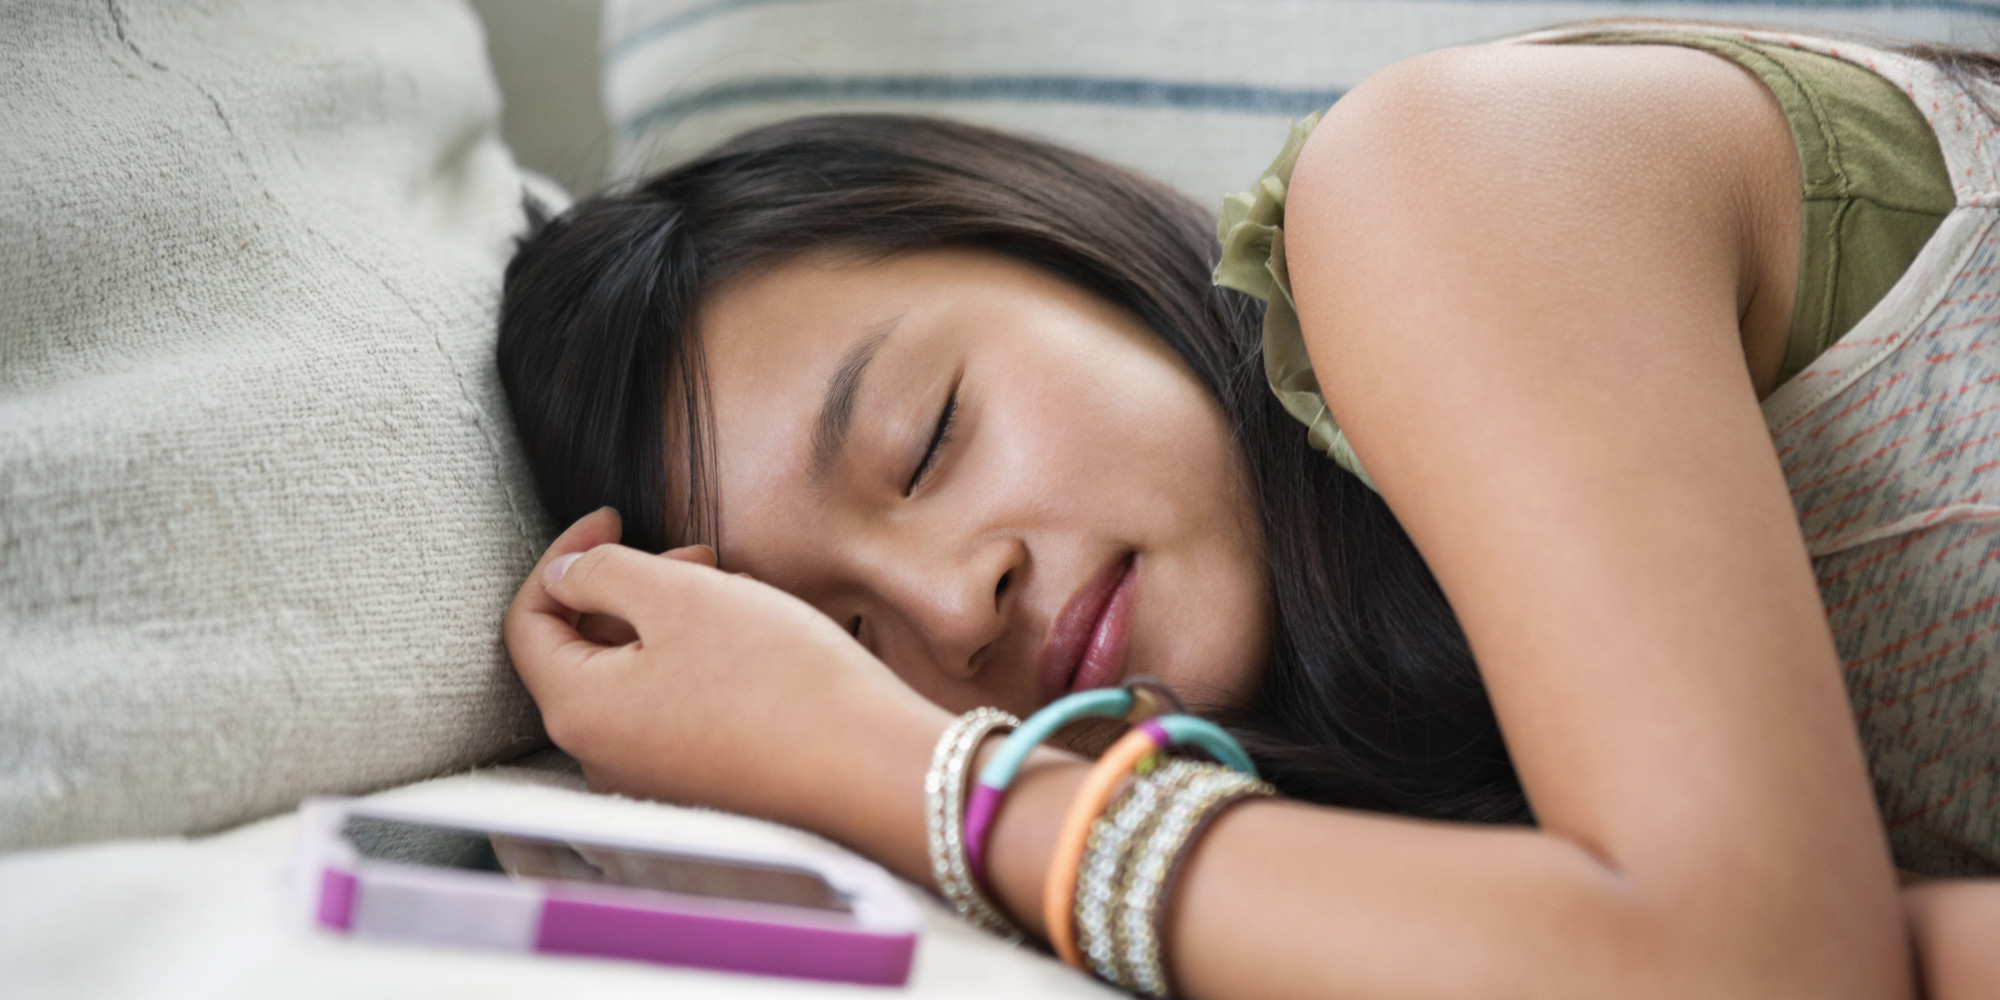 The Health Risks Of Keeping Your Mobile Phone In Your Bedroom